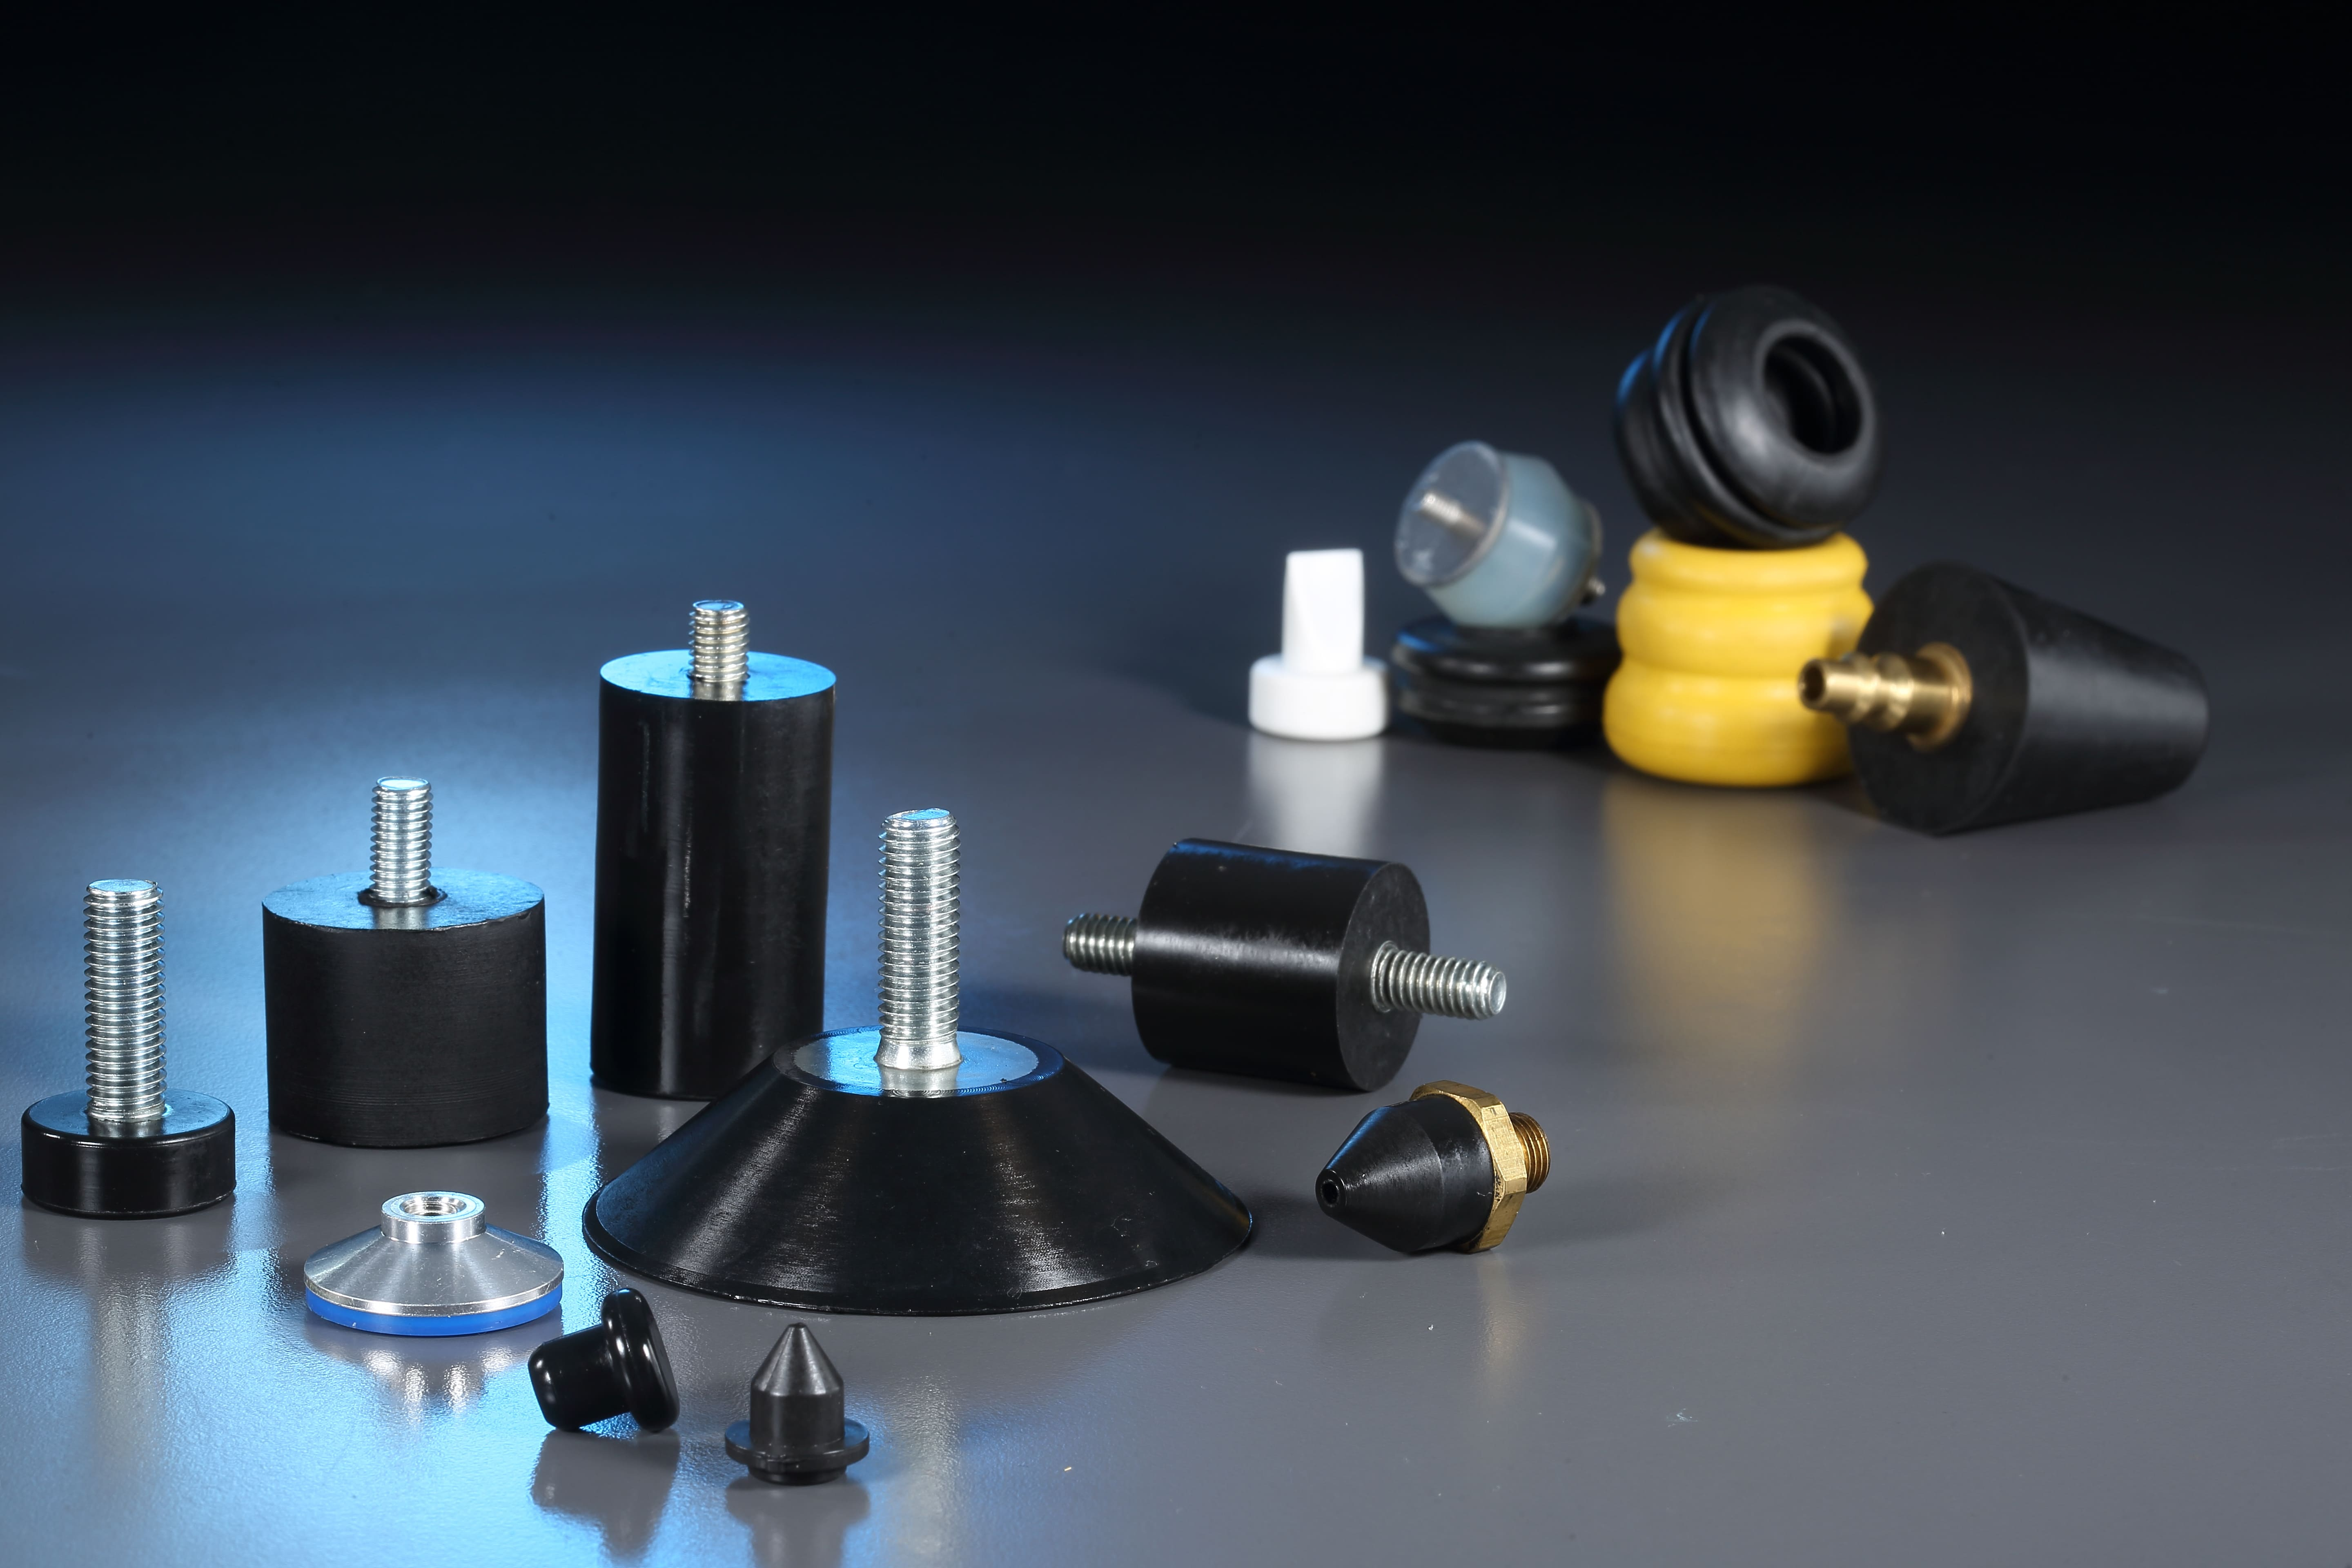 Truck / Trailer / Heavy Duty Anti-Vibration rubber,spigot,nozzle for Rubber, Plastic Parts made by Yee Ming Ying Co., LTD. 昱銘穎有限公司 - MatchSupplier.com